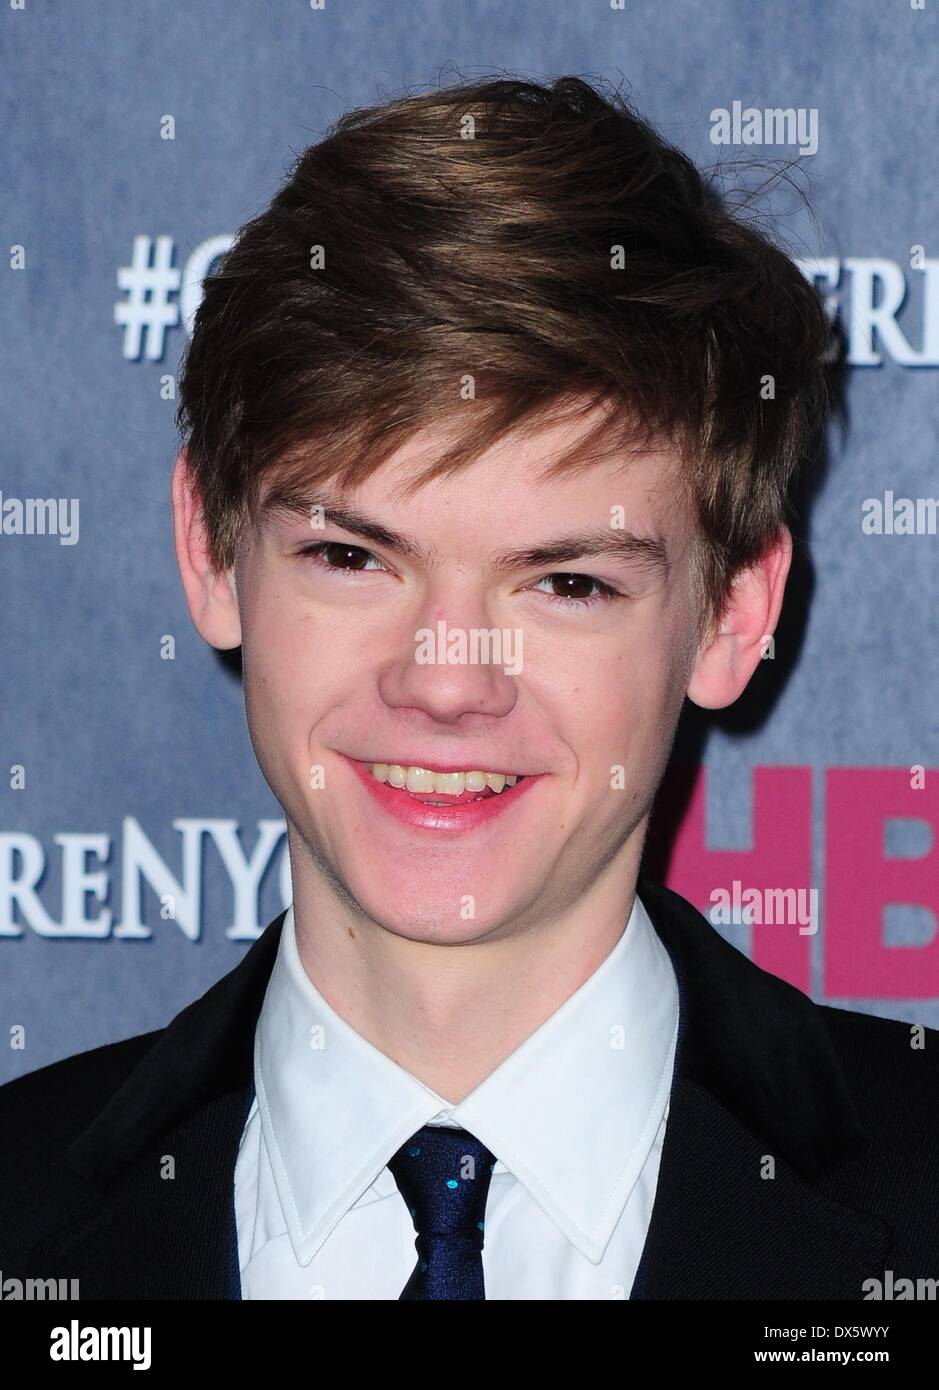 New York, NY, USA. 18th Mar, 2014. Thomas Brodie-Sangster at arrivals for HBO's GAME OF THRONES Fourth Season Premiere, Avery Fisher Hall at Lincoln Center, New York, NY March 18, 2014. Credit:  Gregorio T. Binuya/Everett Collection/Alamy Live News - Stock Image